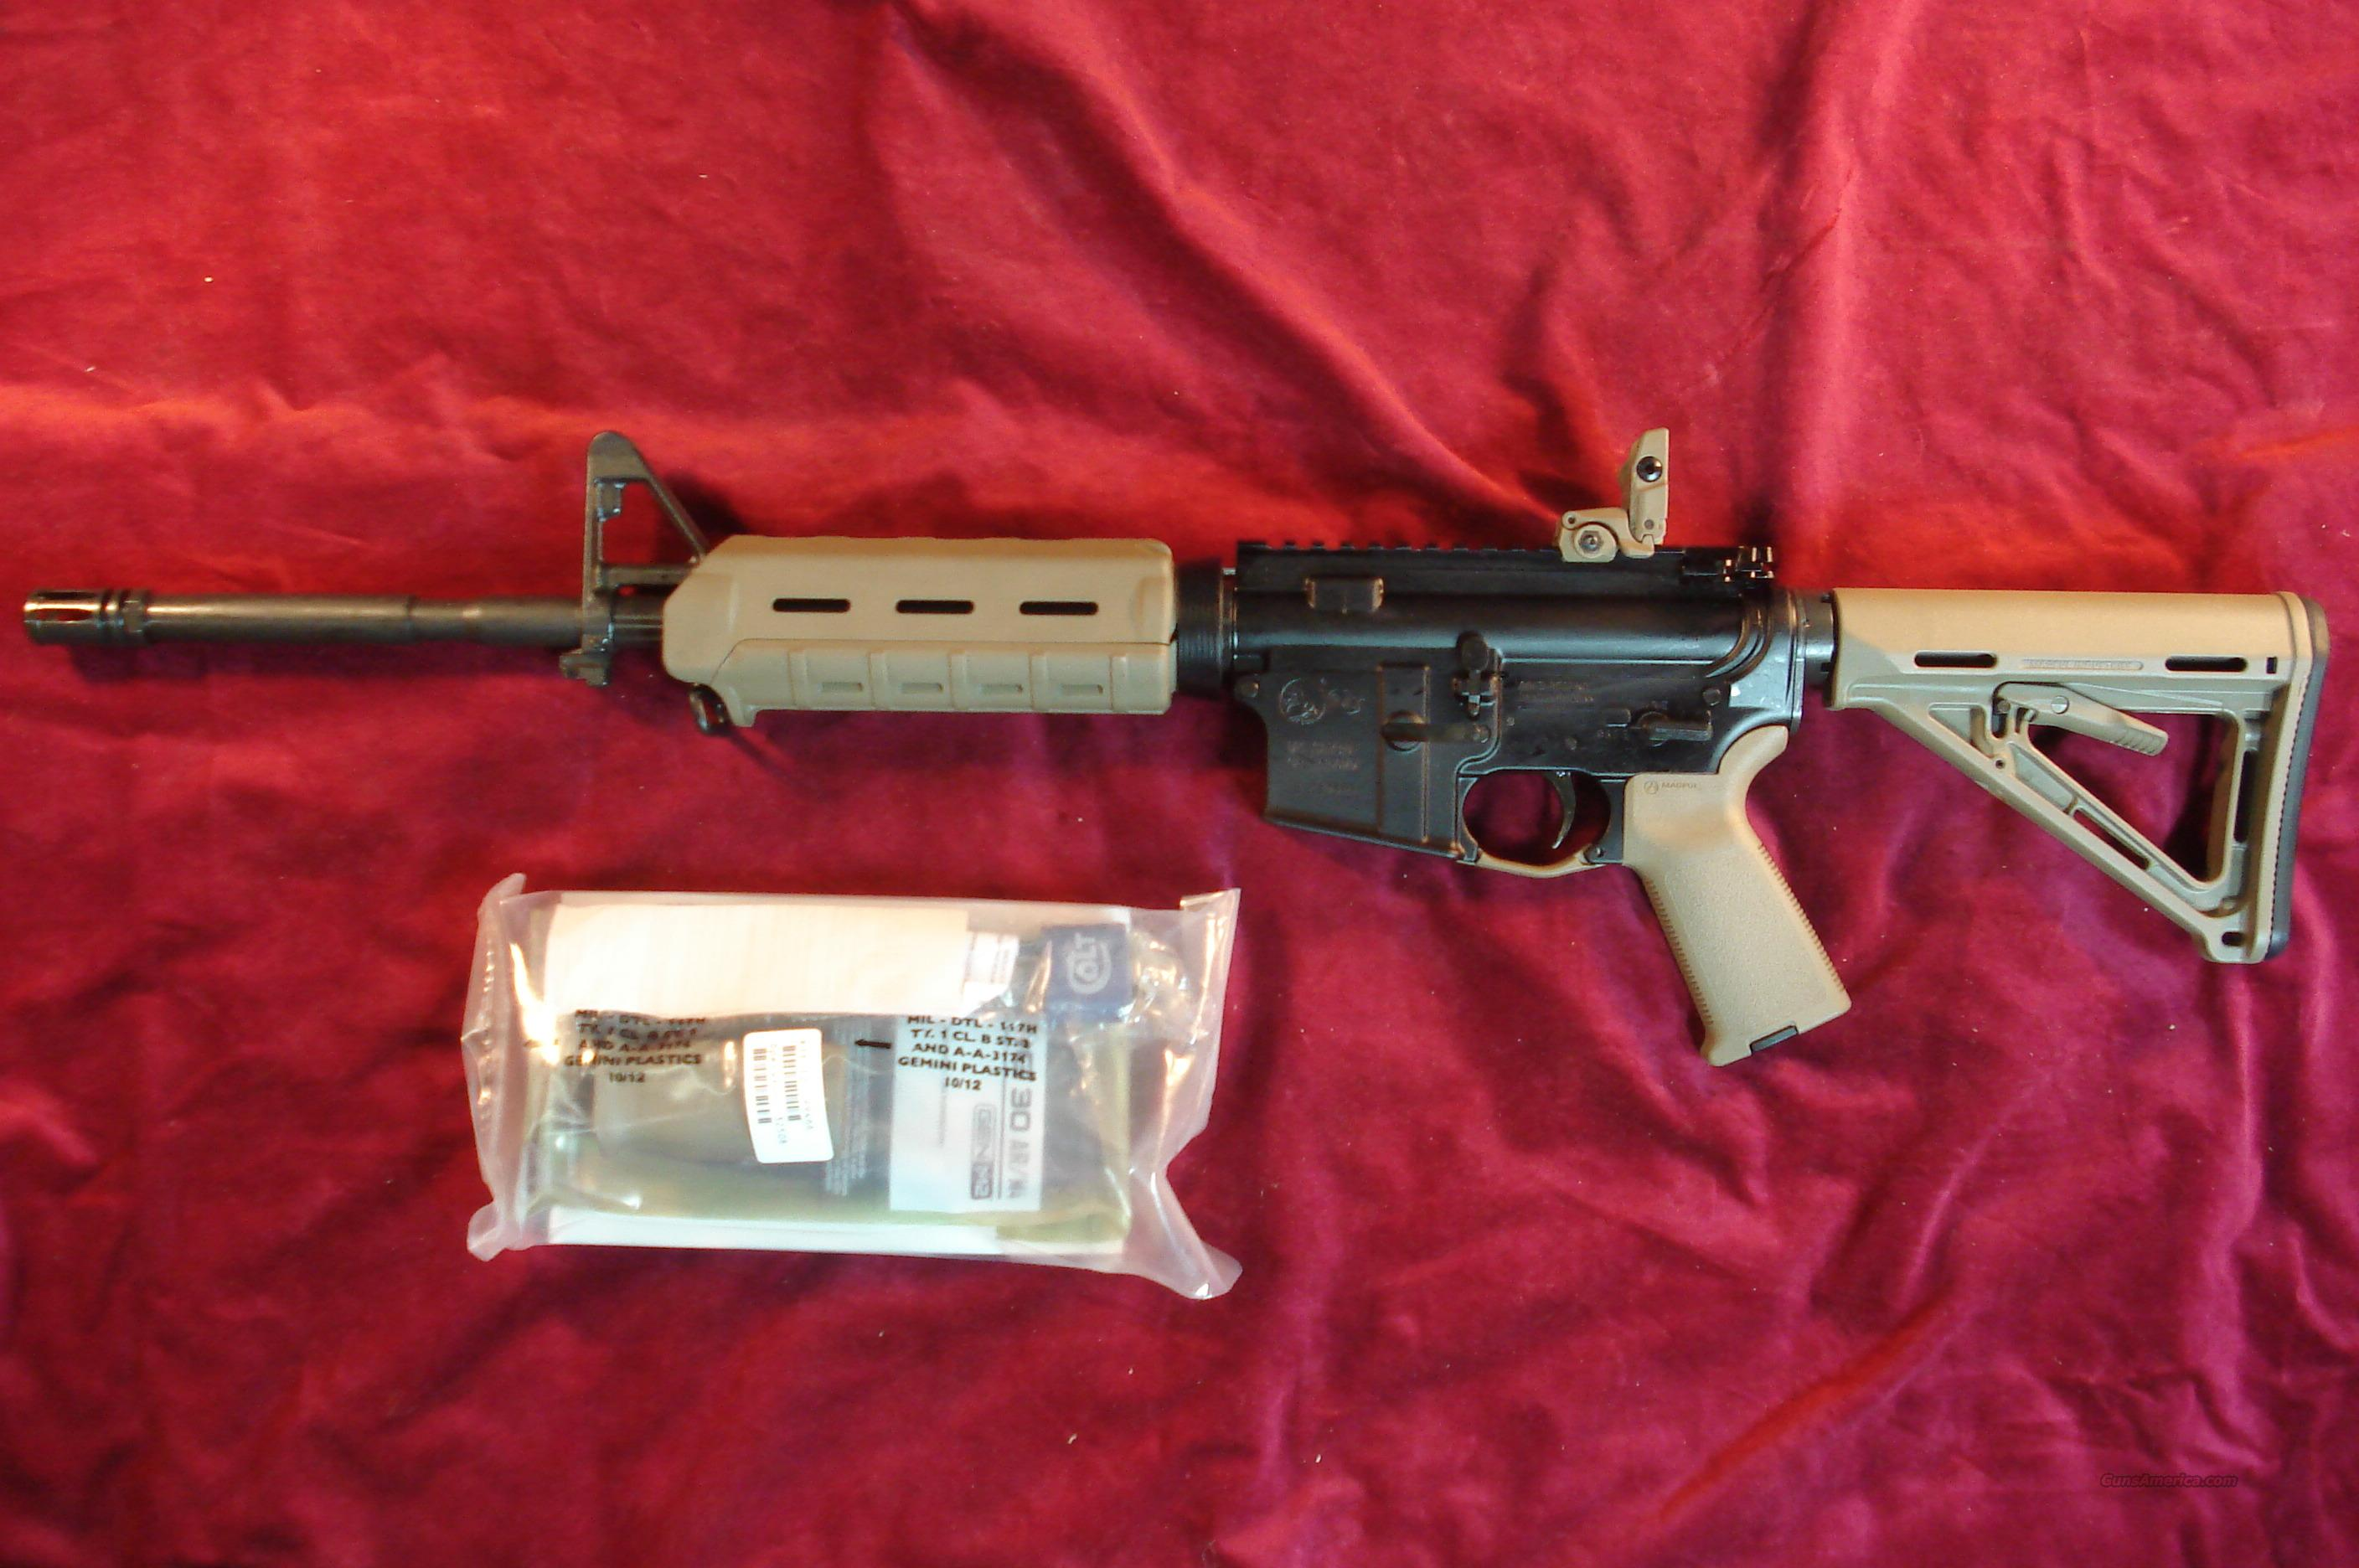 COLT M4 LE6920 2013 CONFIG. FLATTOP FLAT DARK EARTH MAGPUL EQUIPPED AR-15 5.56/223 CAL. NEW (LE6920MP-FDE)   Guns > Rifles > Colt Military/Tactical Rifles